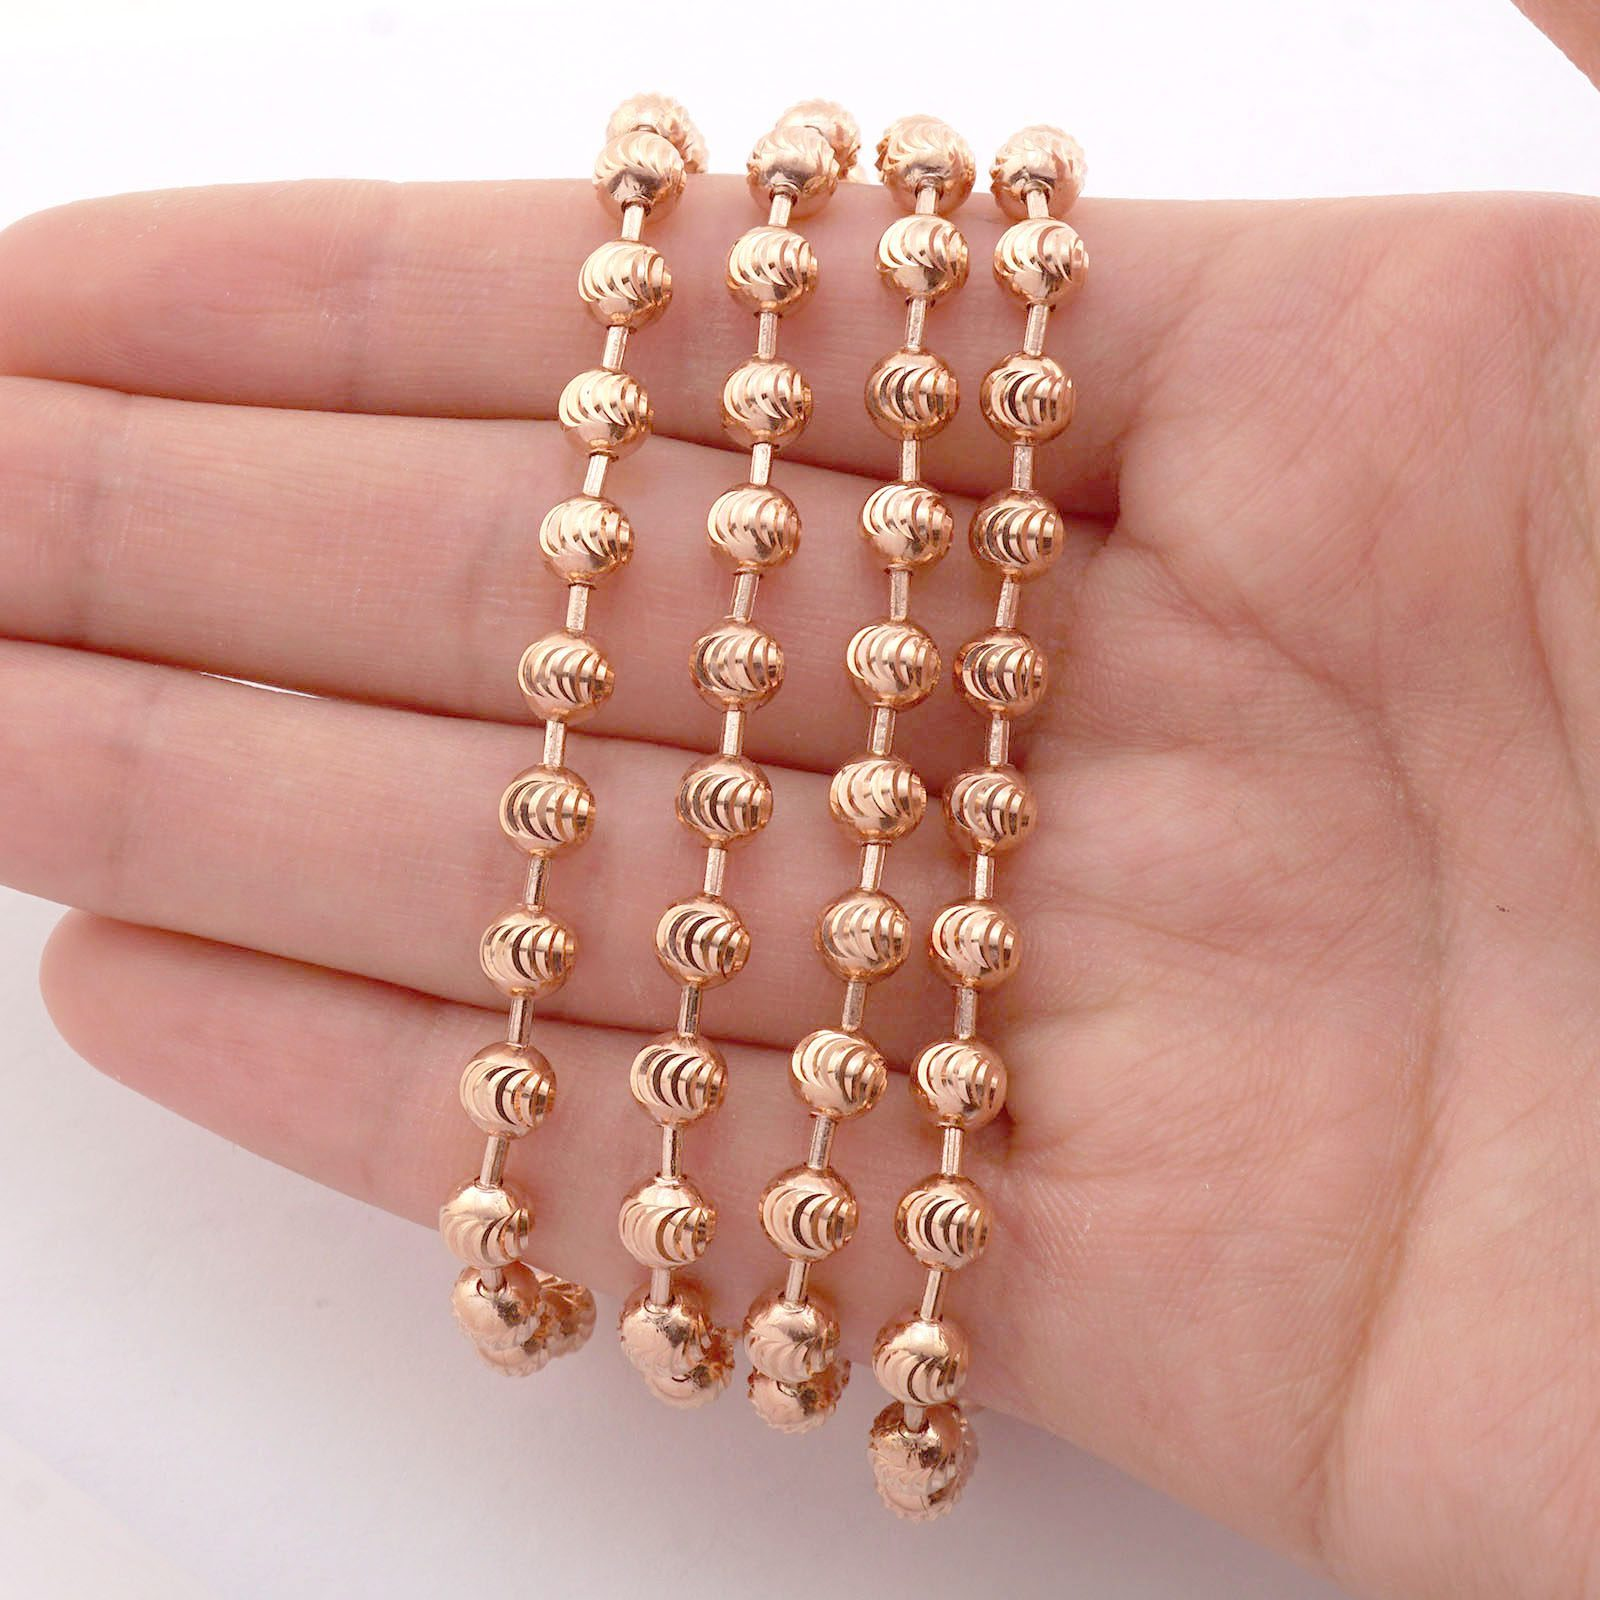 Gold Chains For Sale >> Solid 14k Rose Gold 5mm Moon Cut Ball Beaded Chain ...